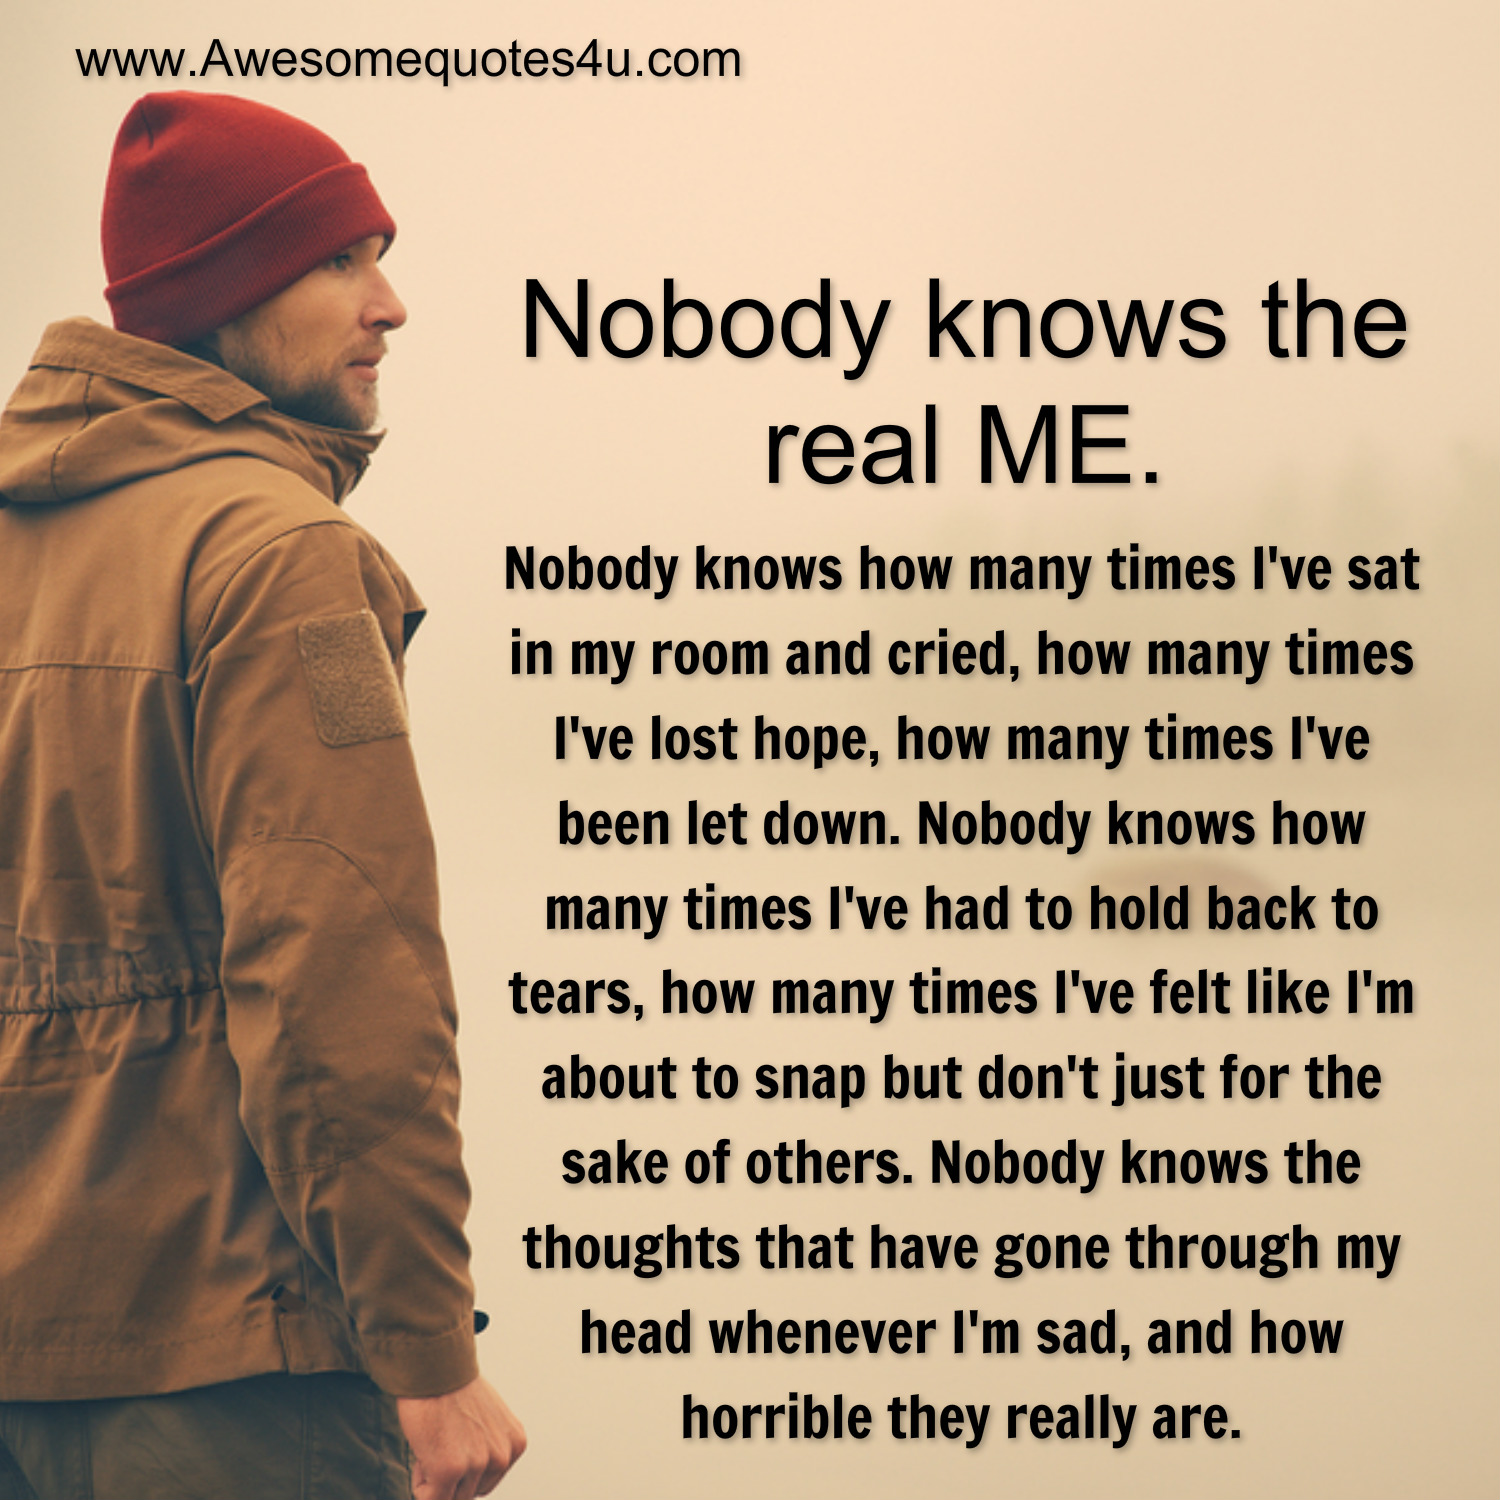 Awesome Quotes: Nobody knows the real me.